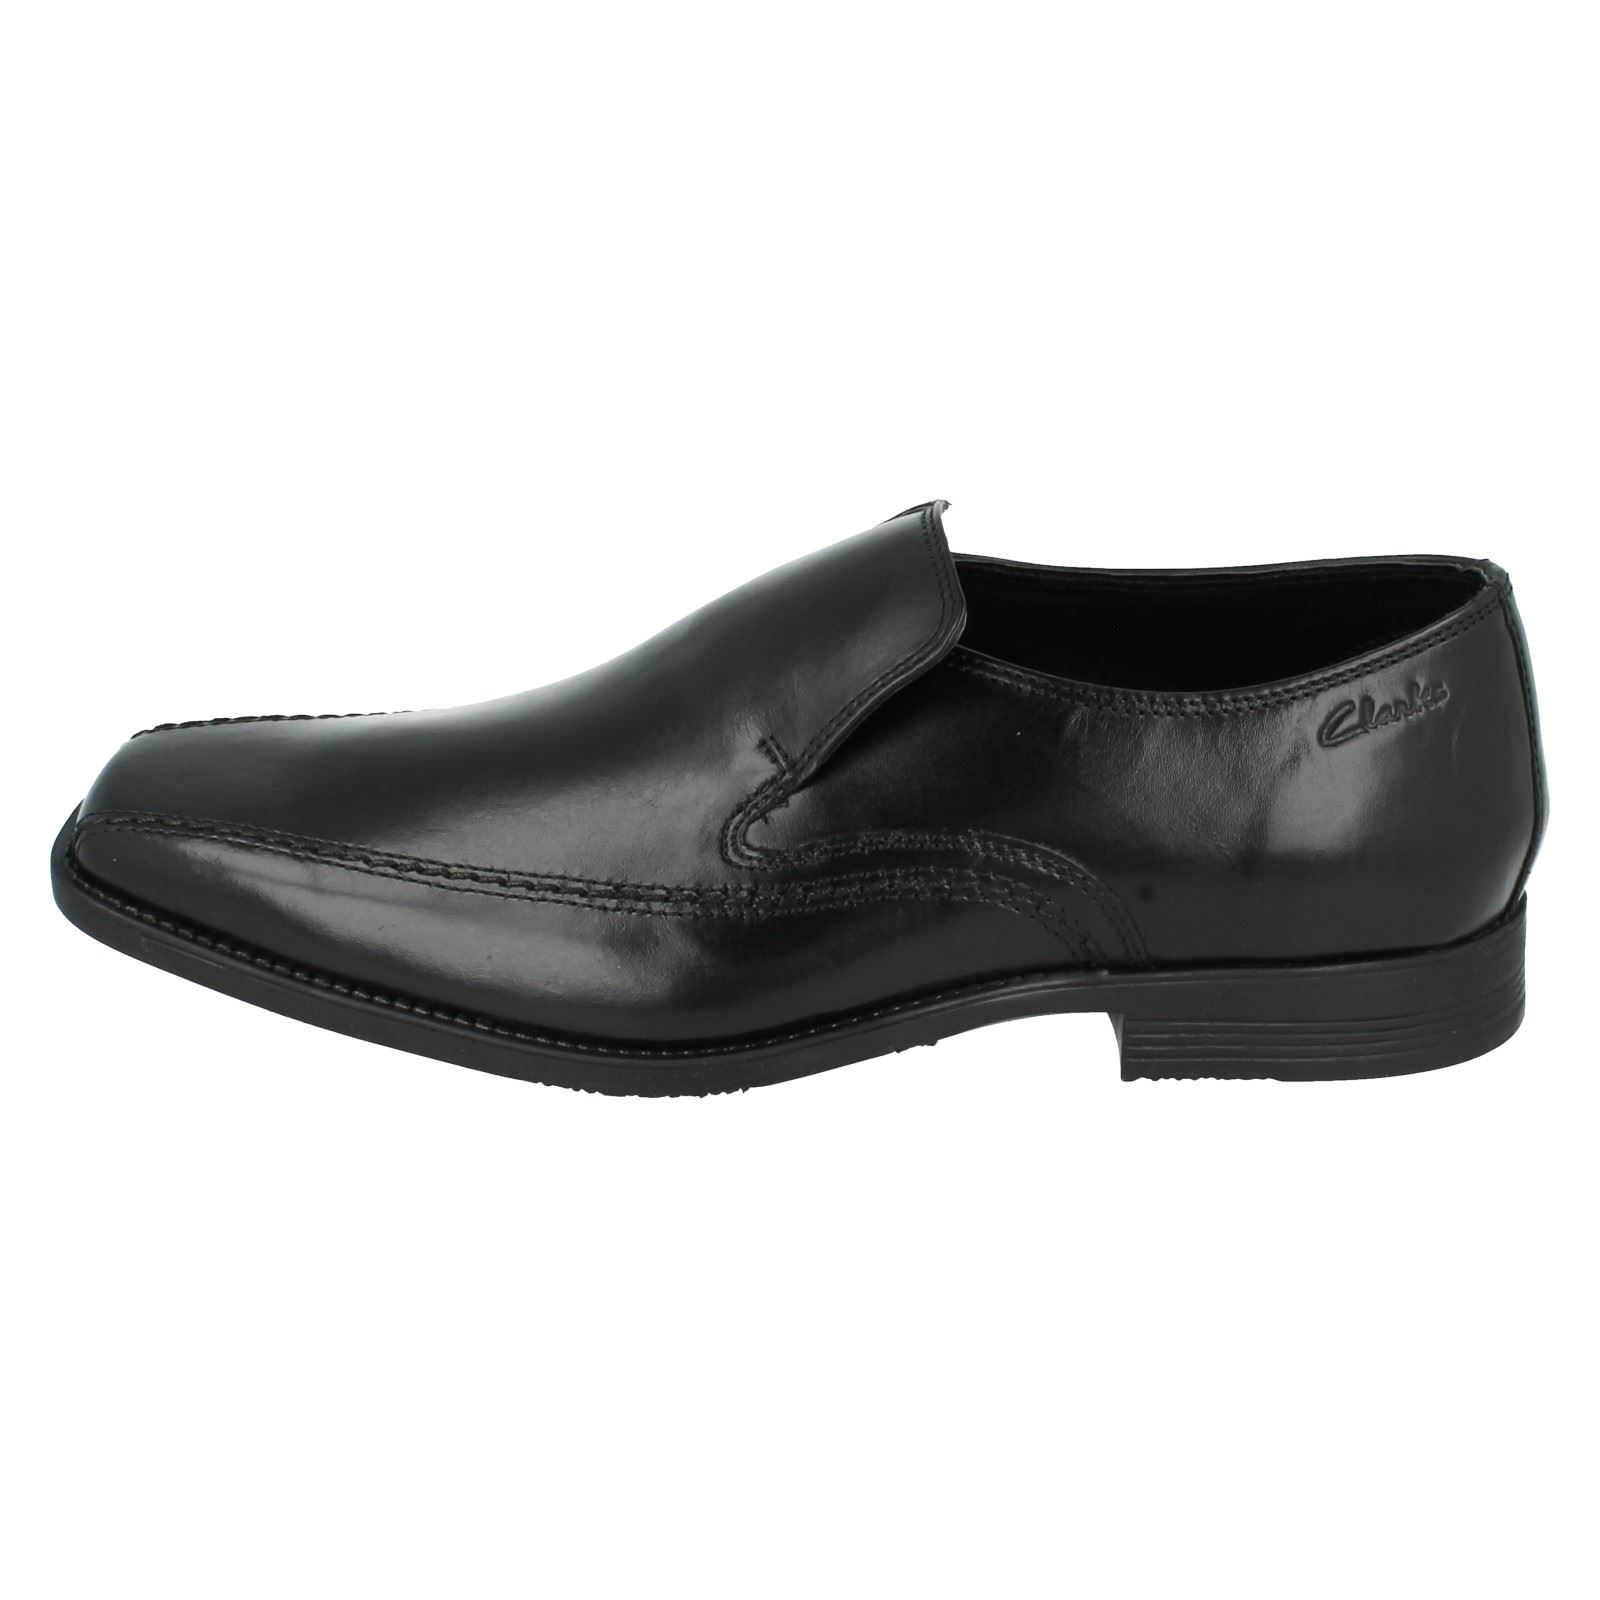 Men's Clarks Formal Slip On Out Schuhes - Acre Out On a14c74